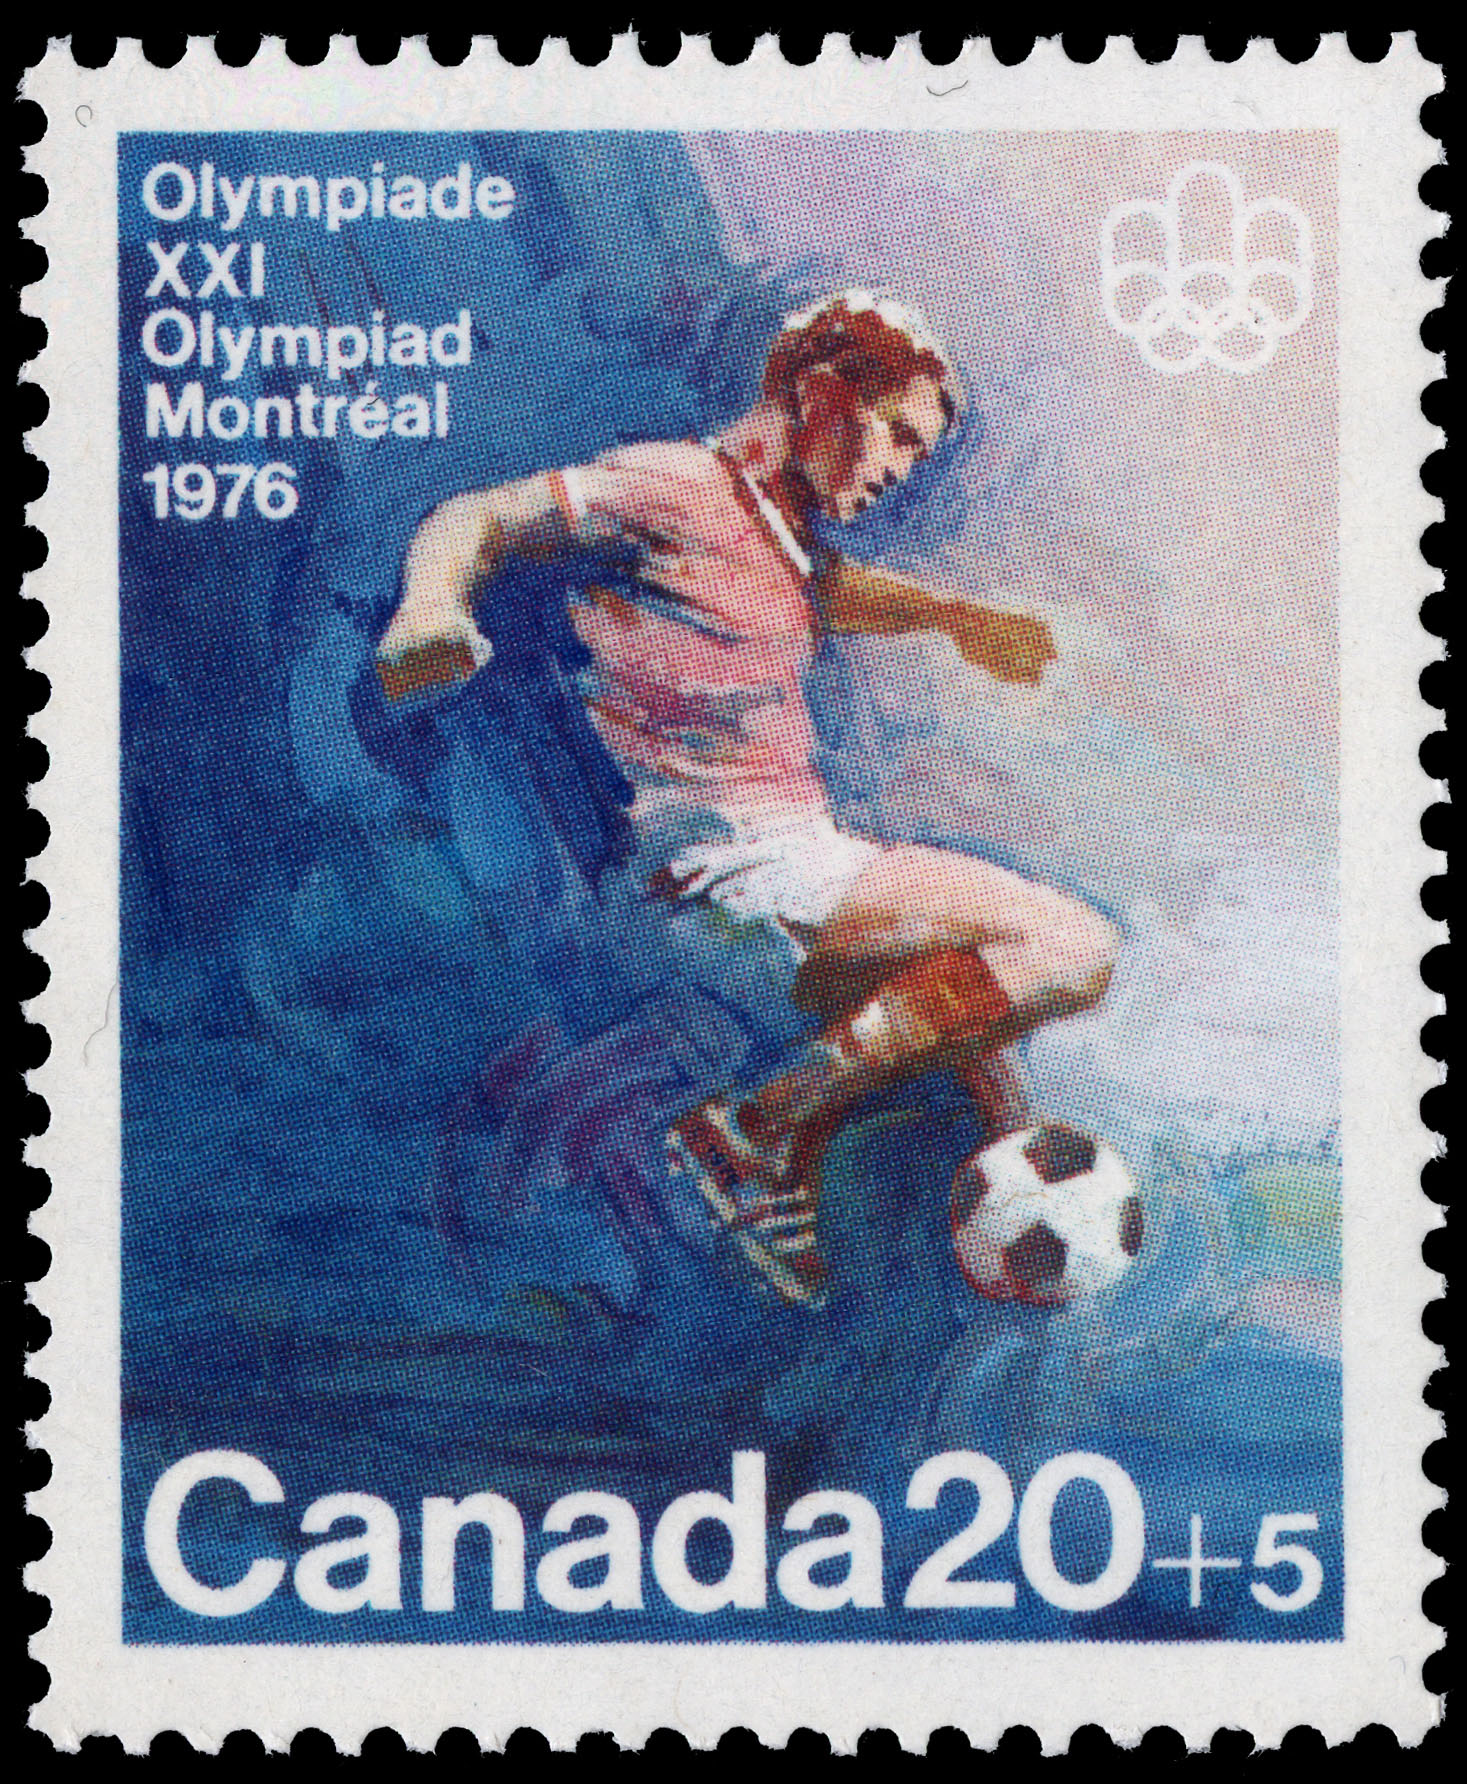 Soccer Canada Postage Stamp | 1976 Olympic Games, Team Sports and Gymnastics